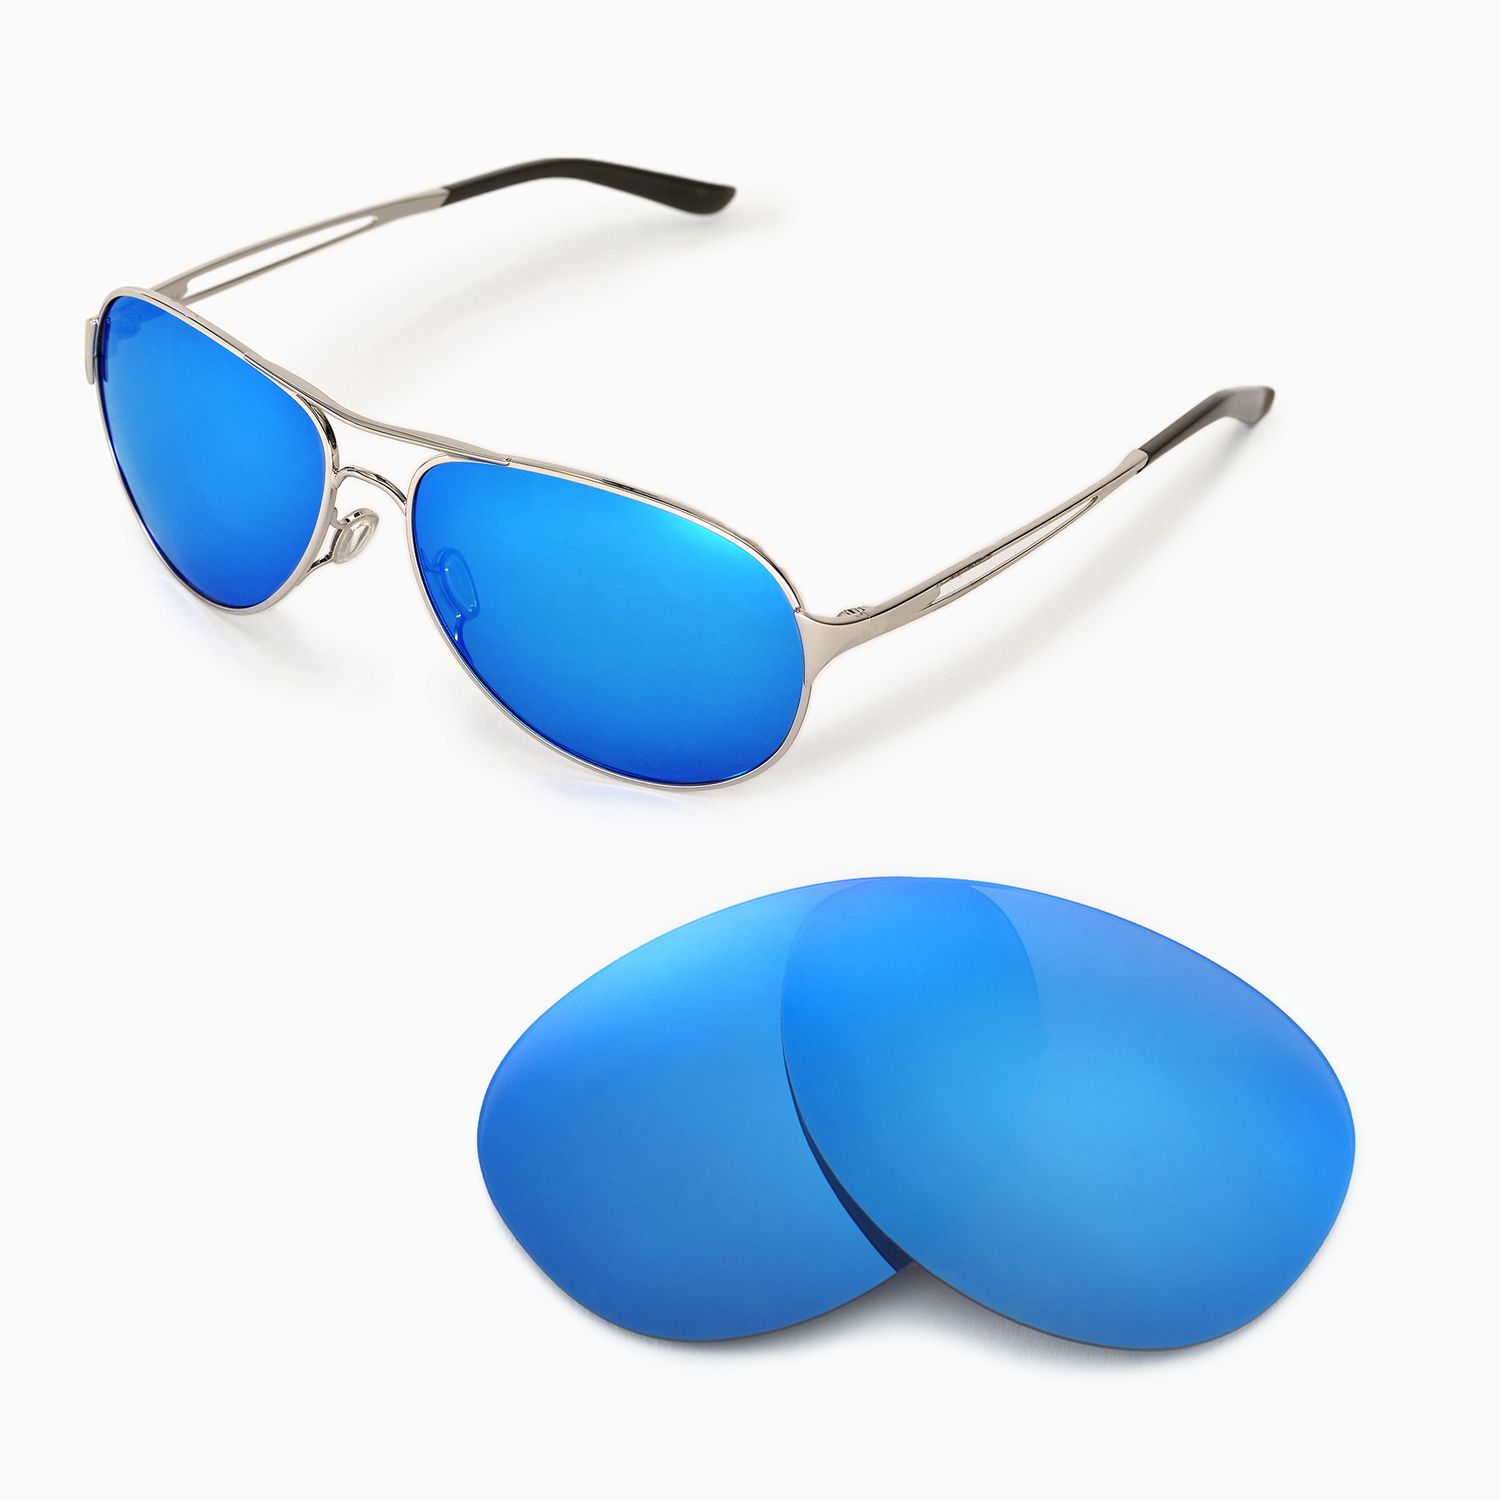 3a3eb6484f Details about New Walleva Ice Blue Polarized Replacement Lenses For Oakley  Caveat Sunglasses